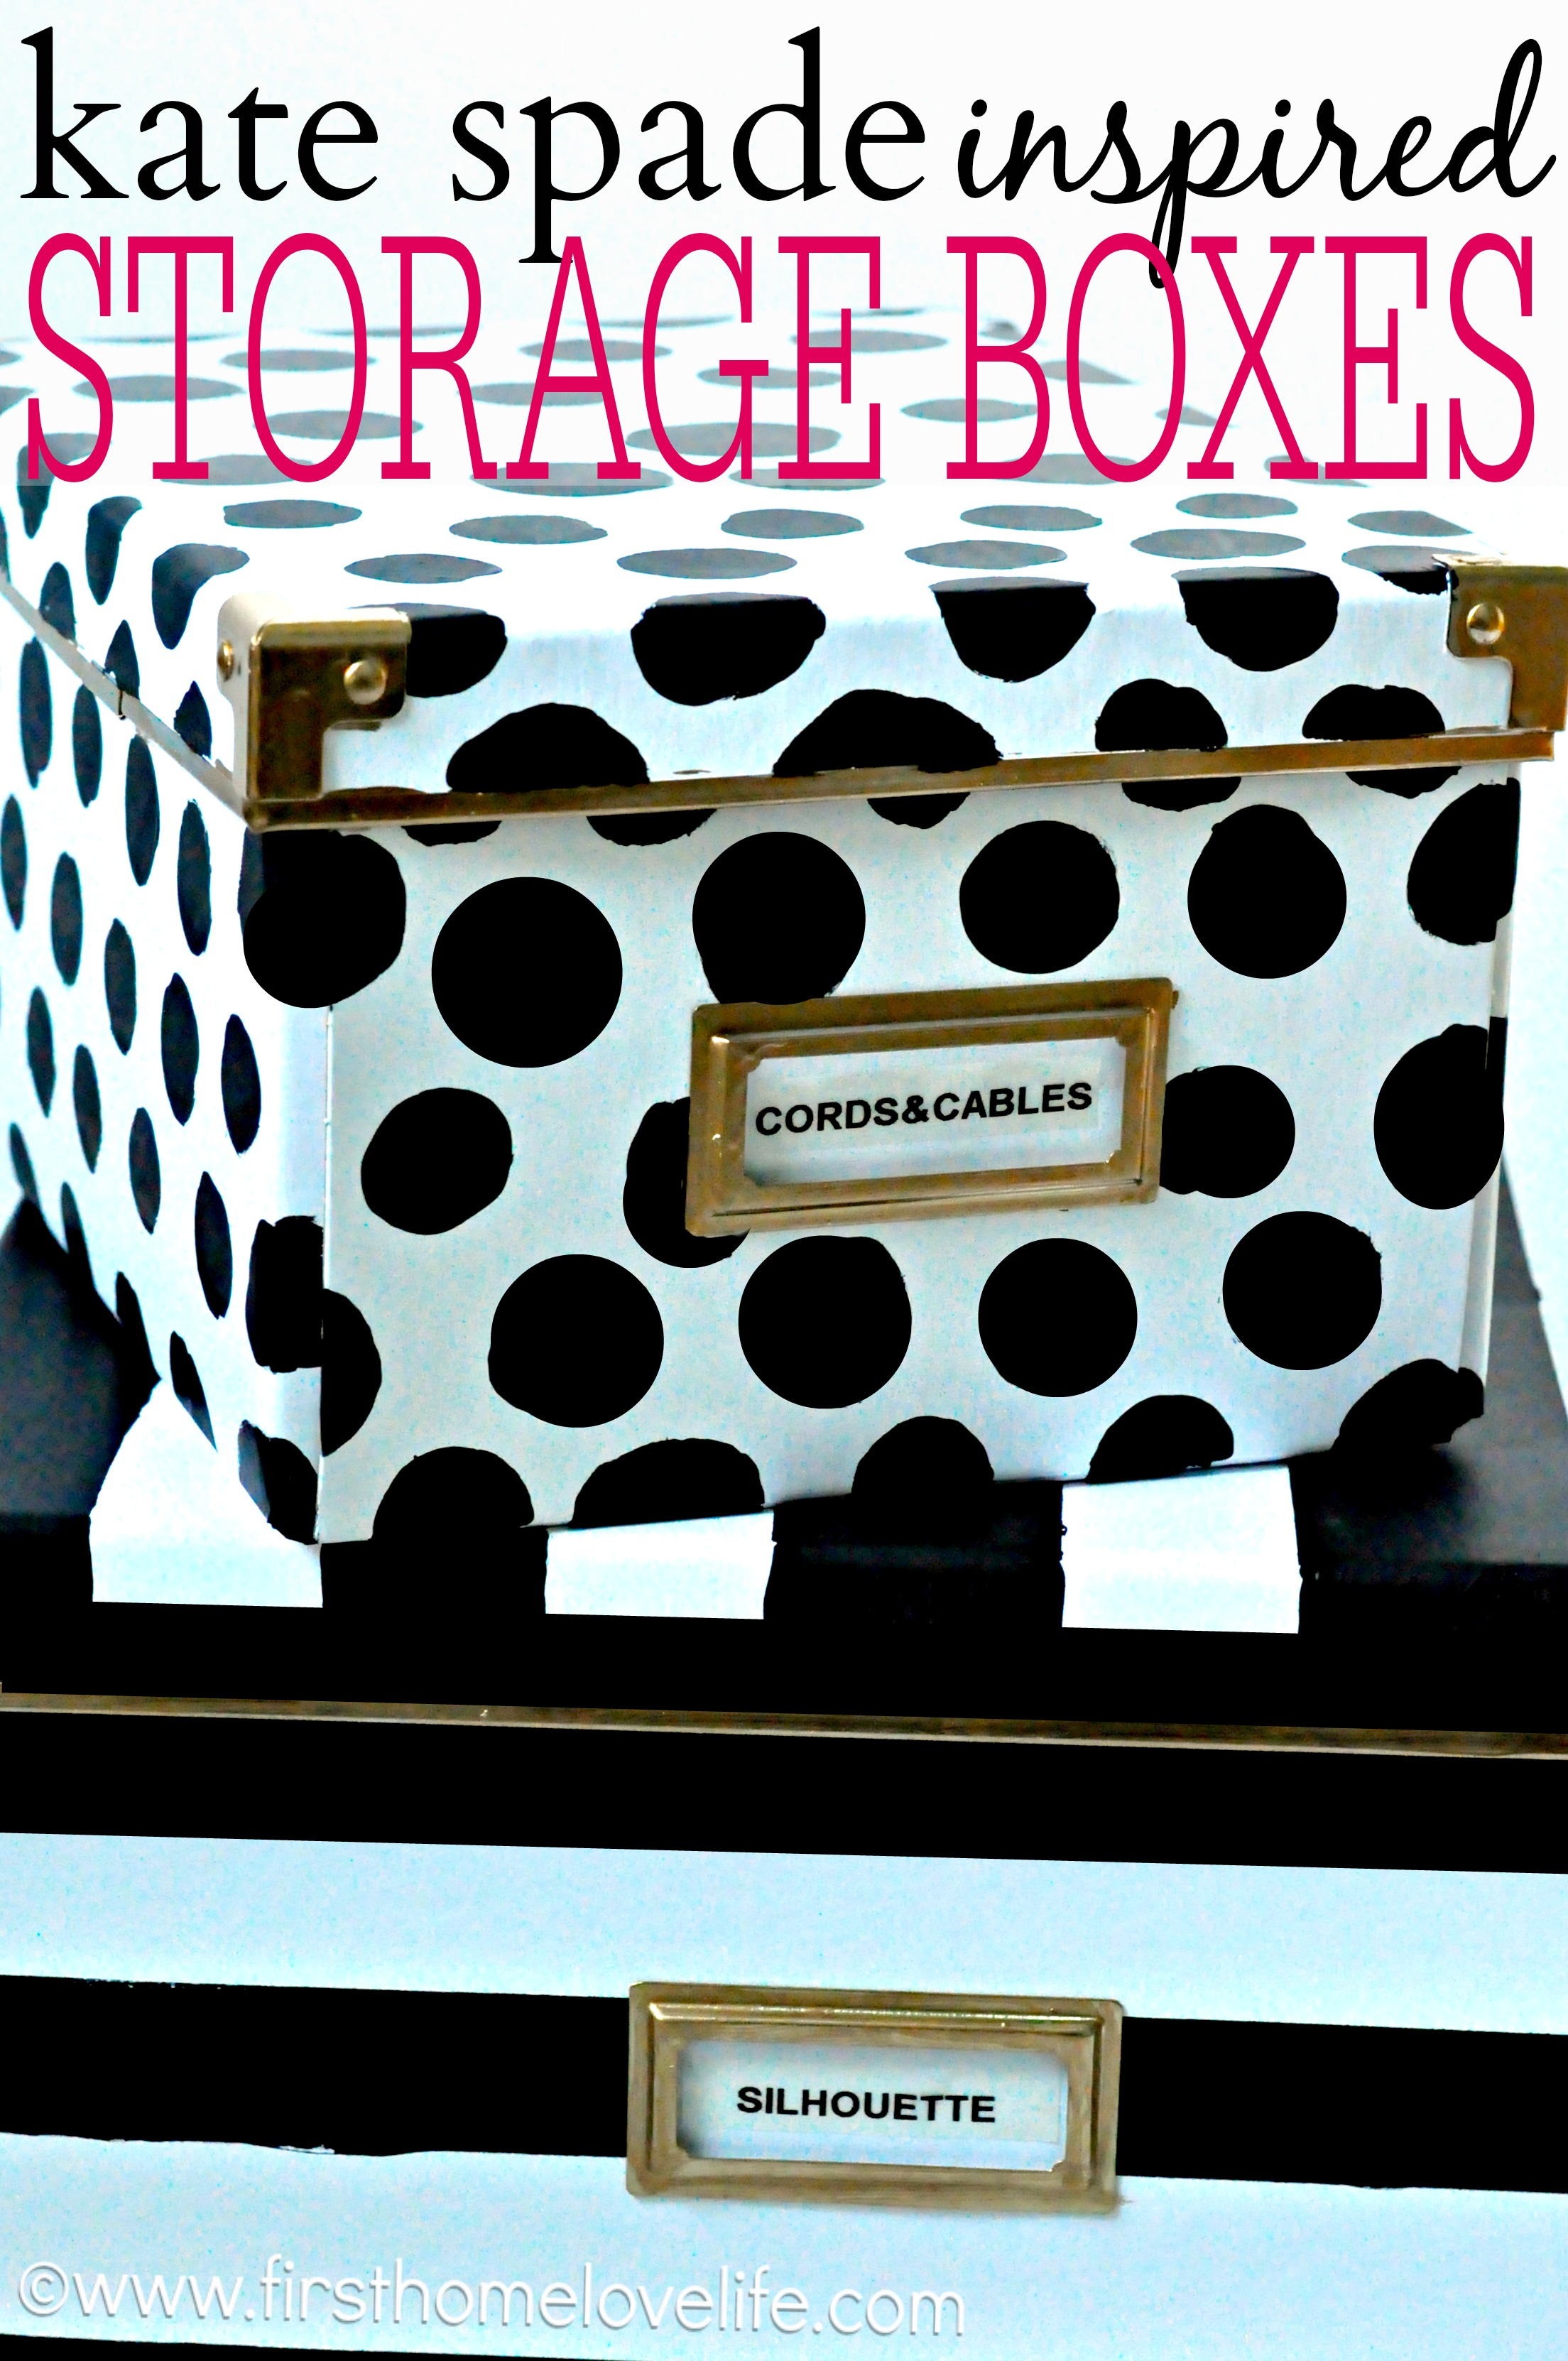 kate spade inspired storage boxes first home love life. Black Bedroom Furniture Sets. Home Design Ideas